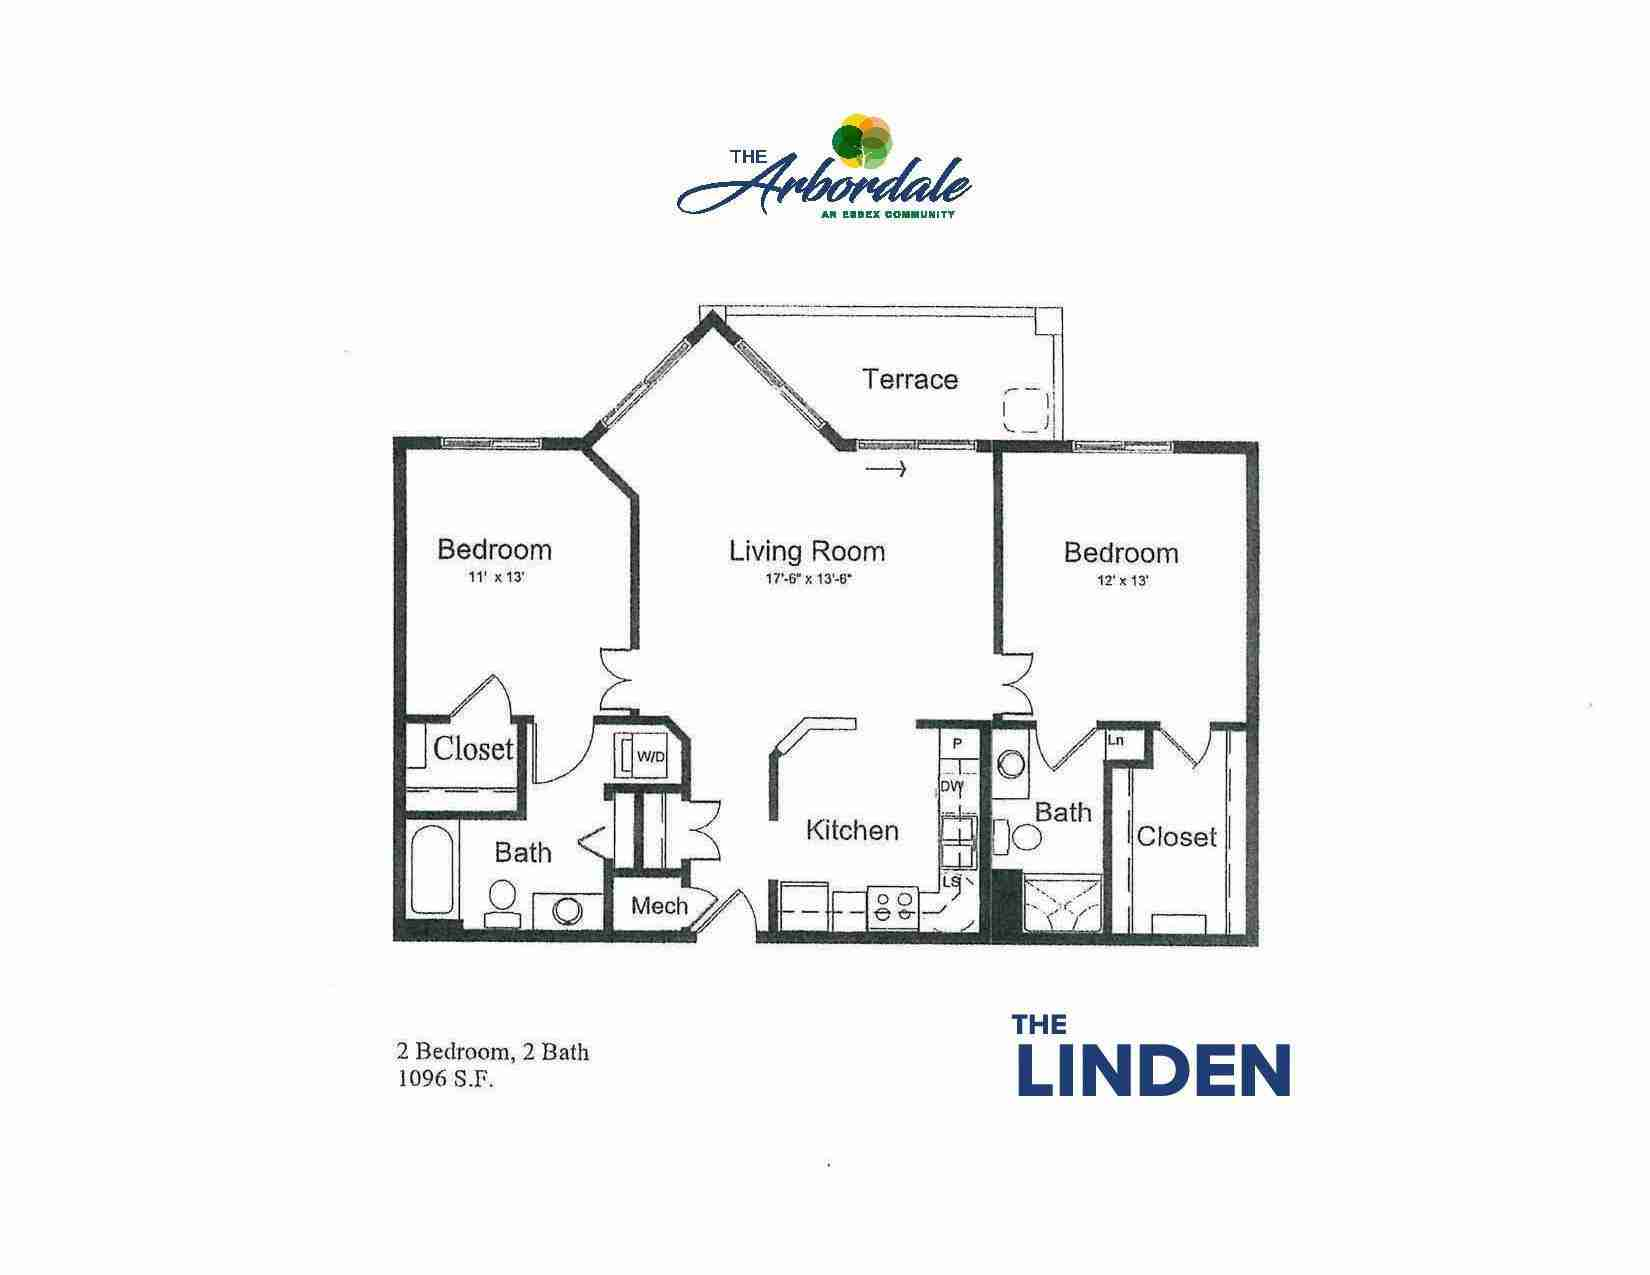 the linden floor plan, 2 bedroom, 2 bath, 1096 sq ft